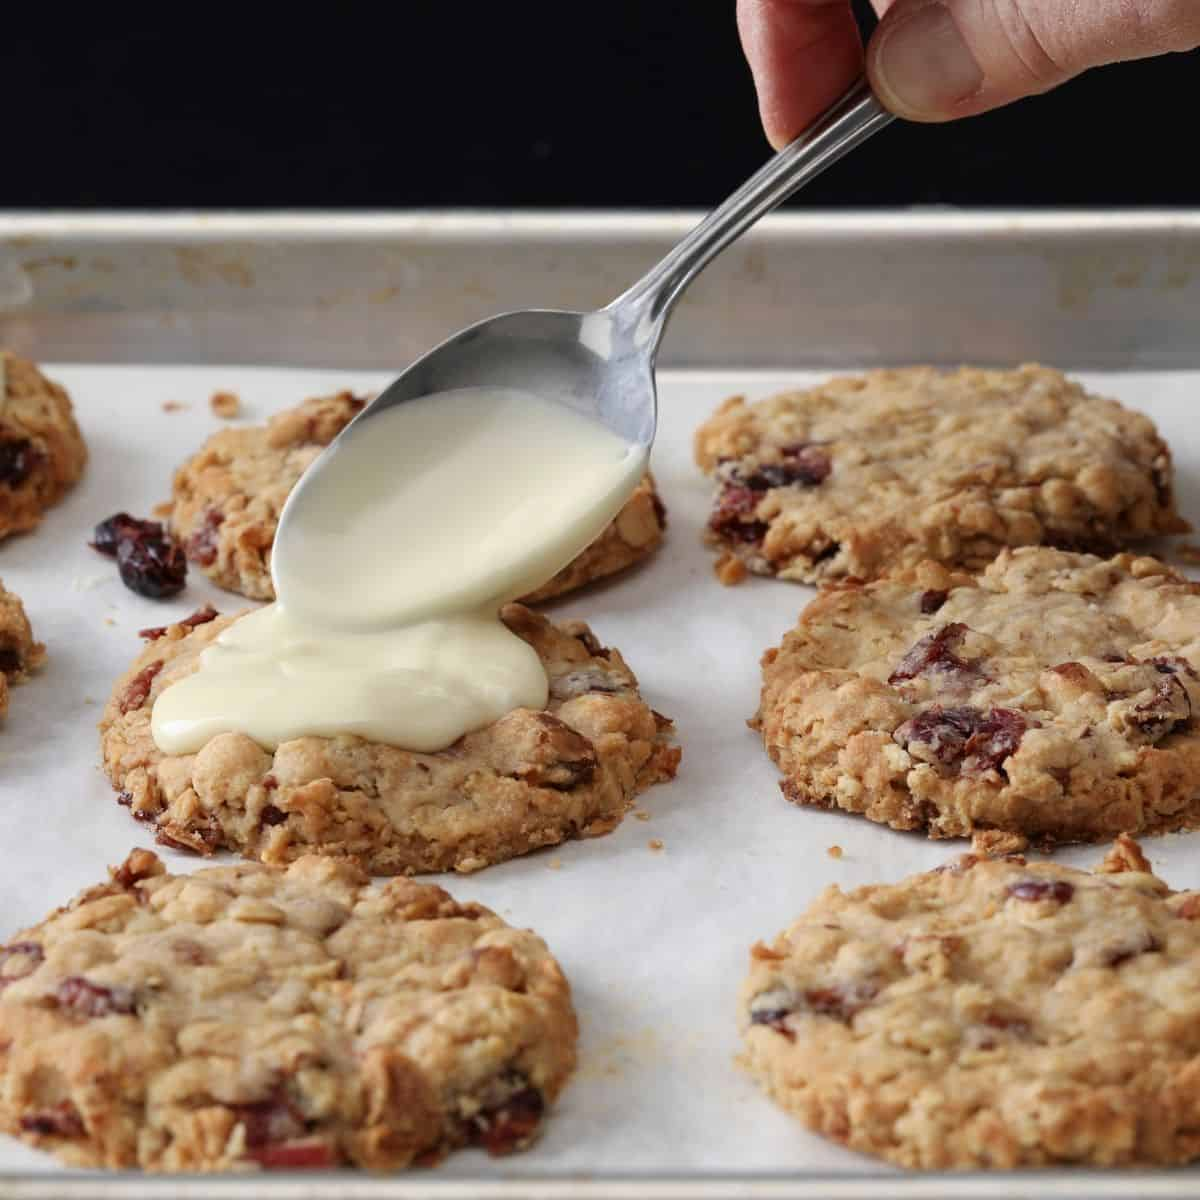 Six oatmeal cookies on a baking pan getting drizzled with vanilla icing with a spoon